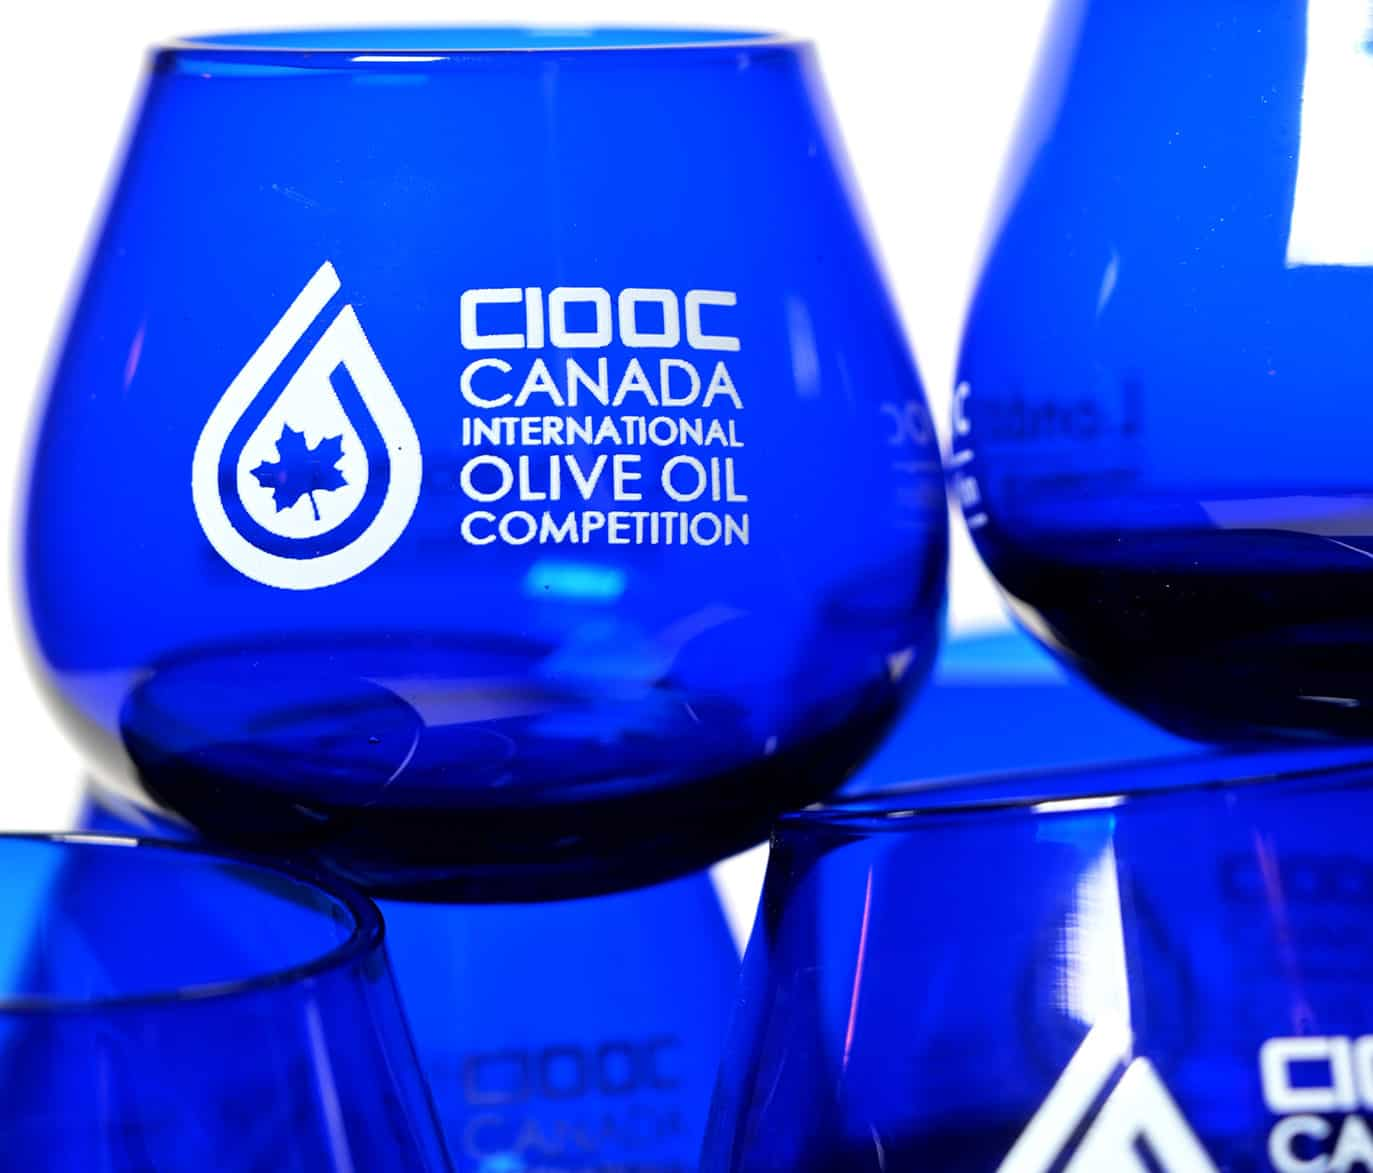 Home, Canada International Olive Oil Competition